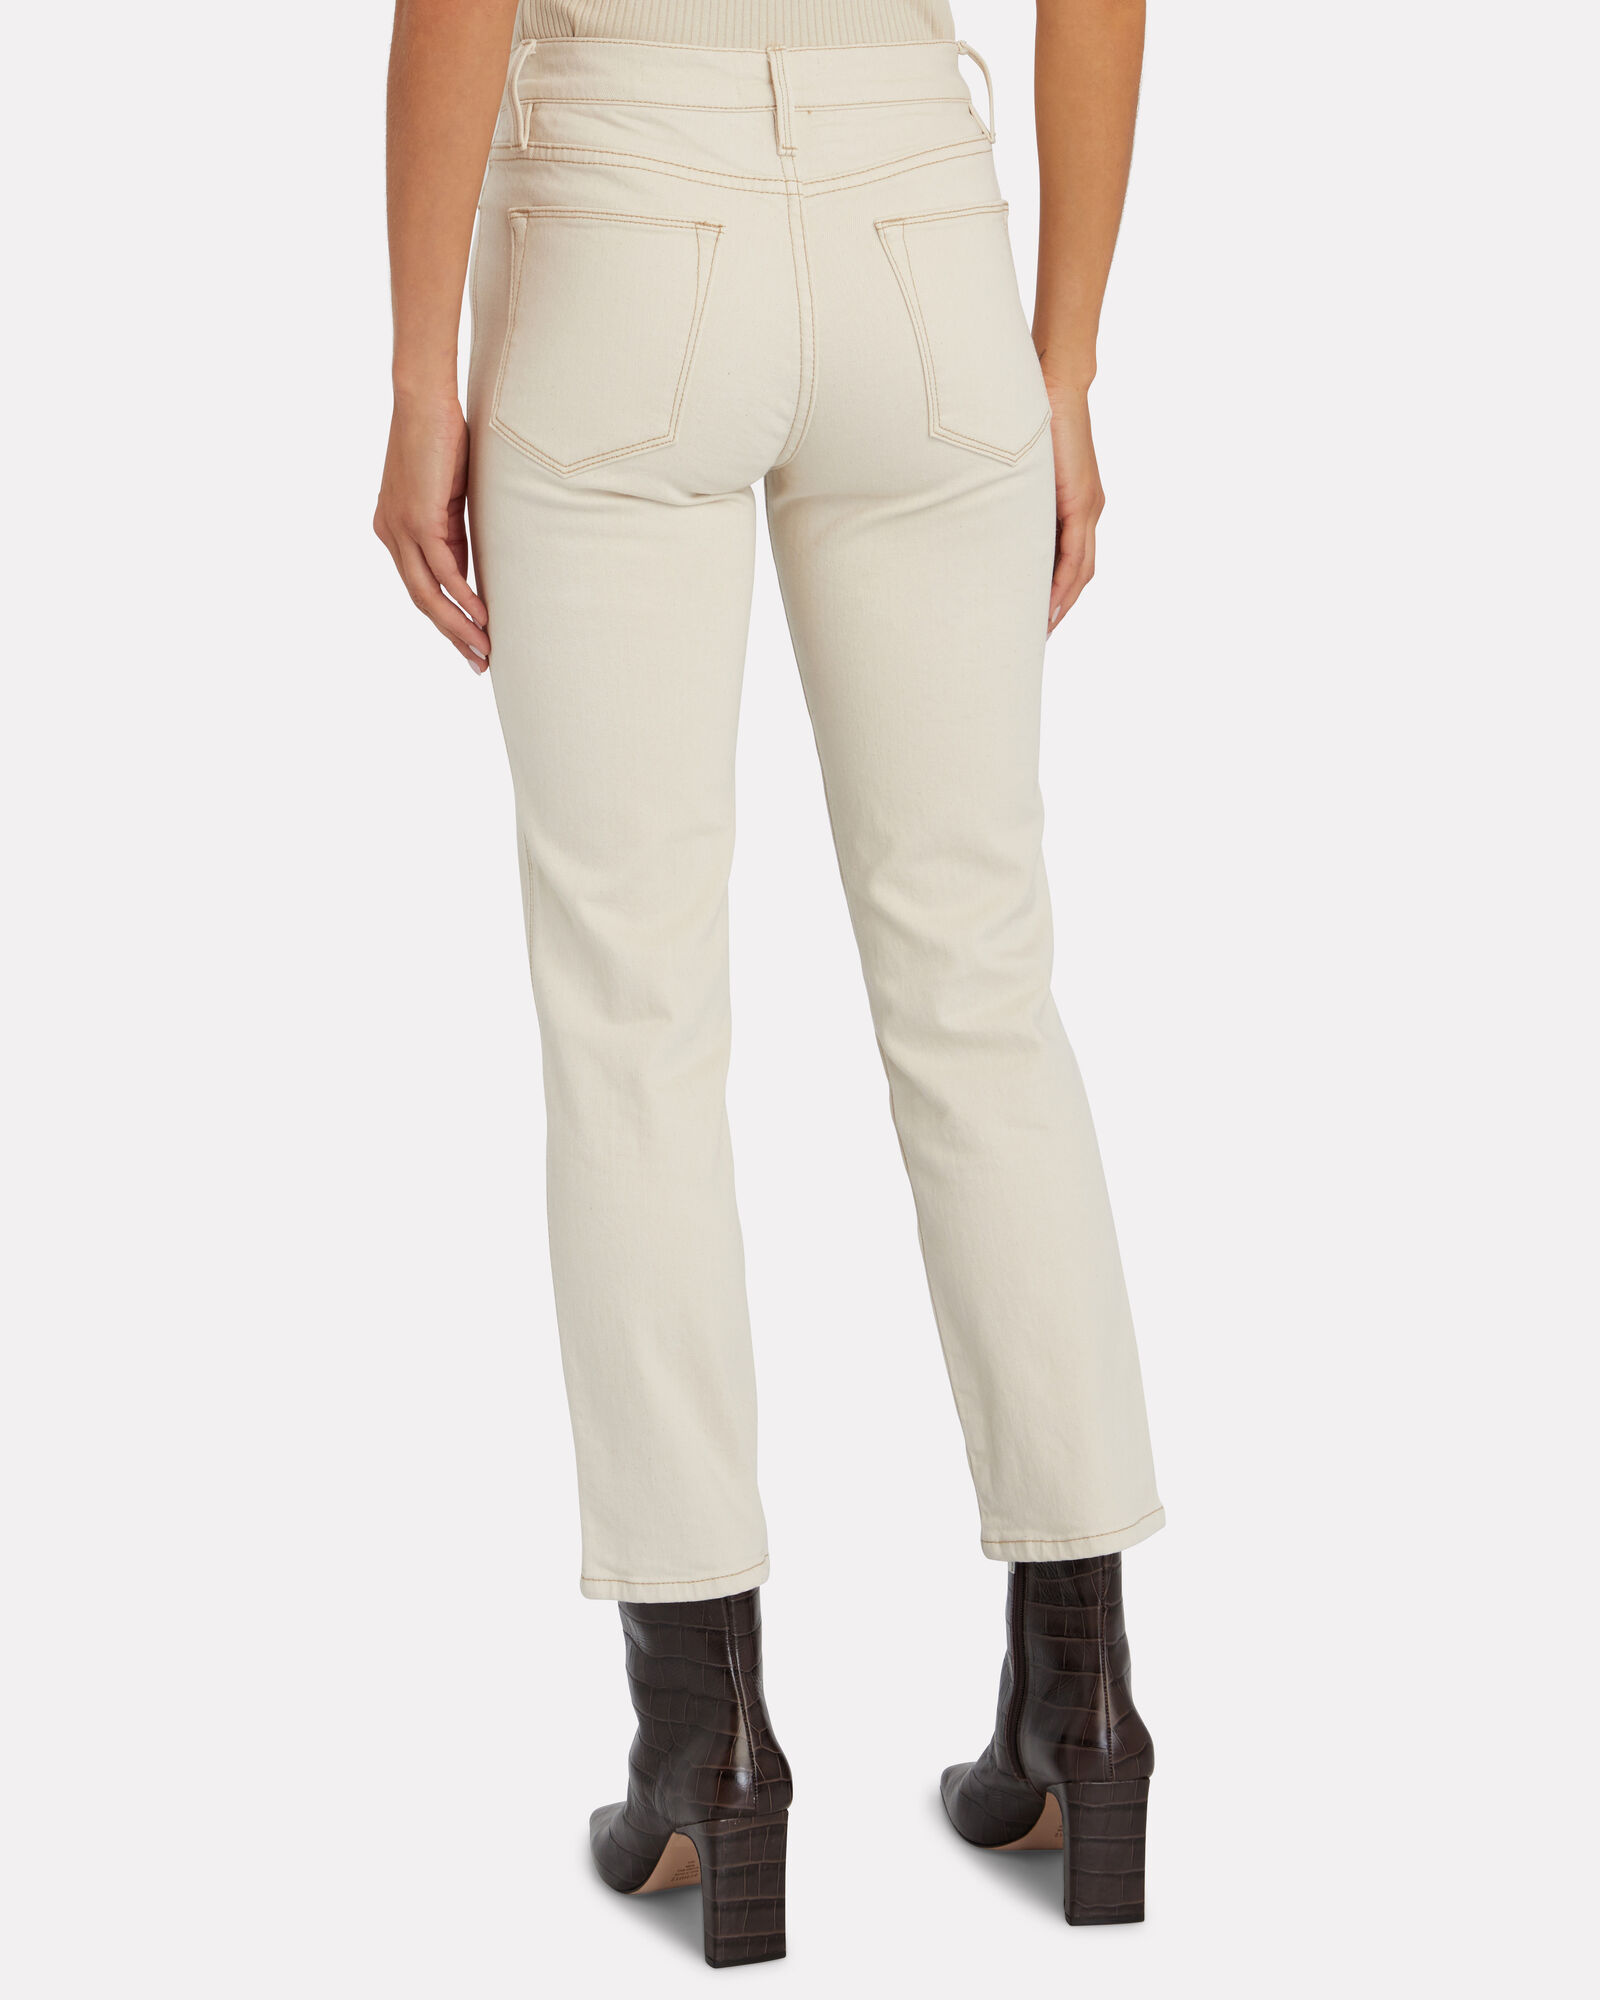 Le High Double Needle Straight Jeans, IVORY, hi-res